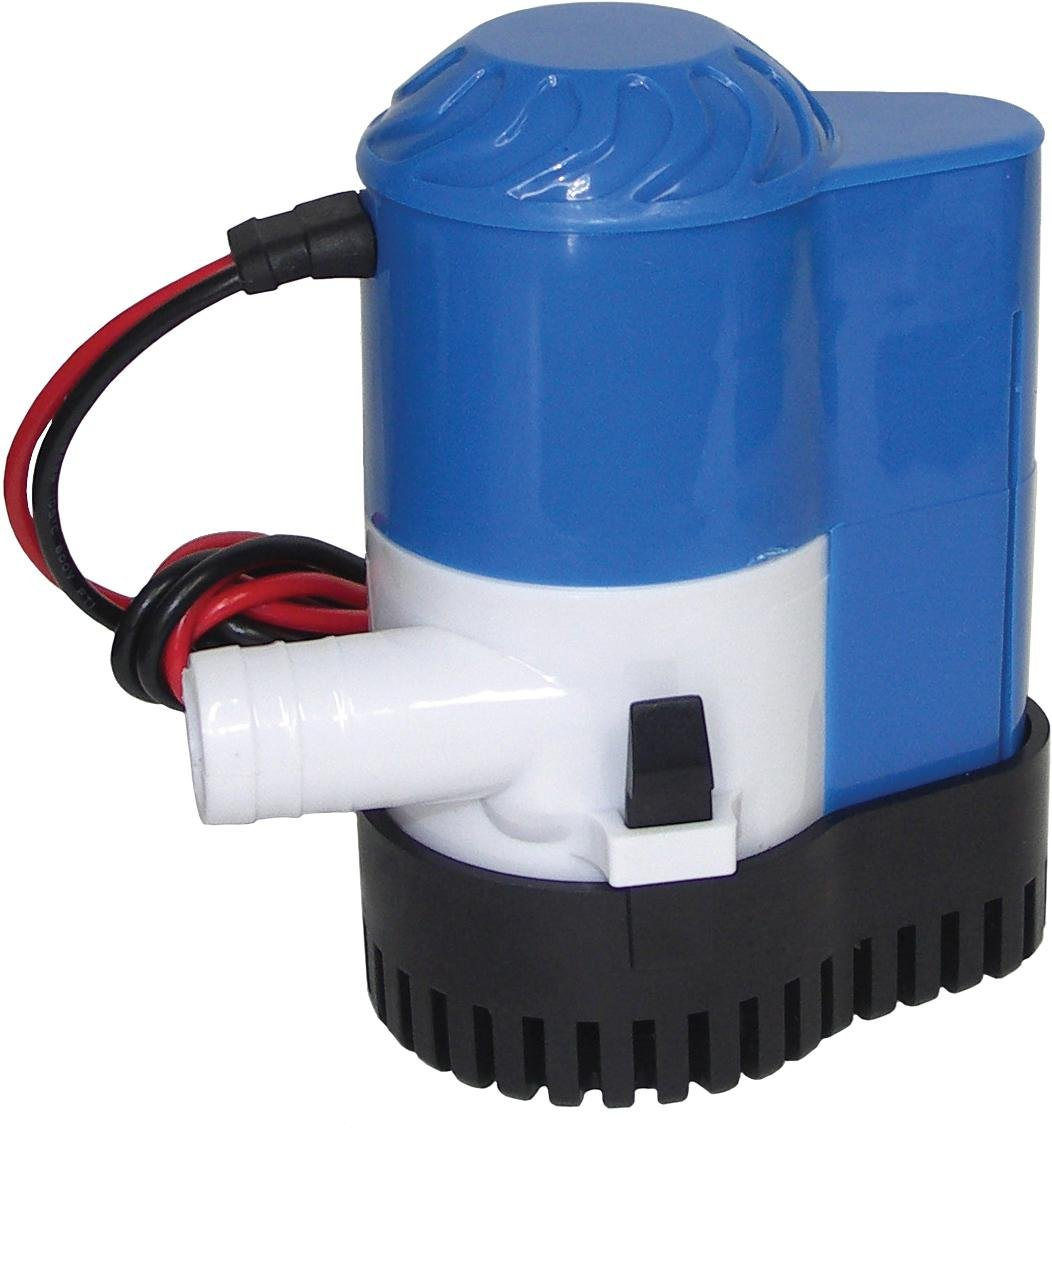 Shoreline Marine 800 GPH Bilge Pump with Auto Switch South Bend SS-SMS-4012038 A-052260